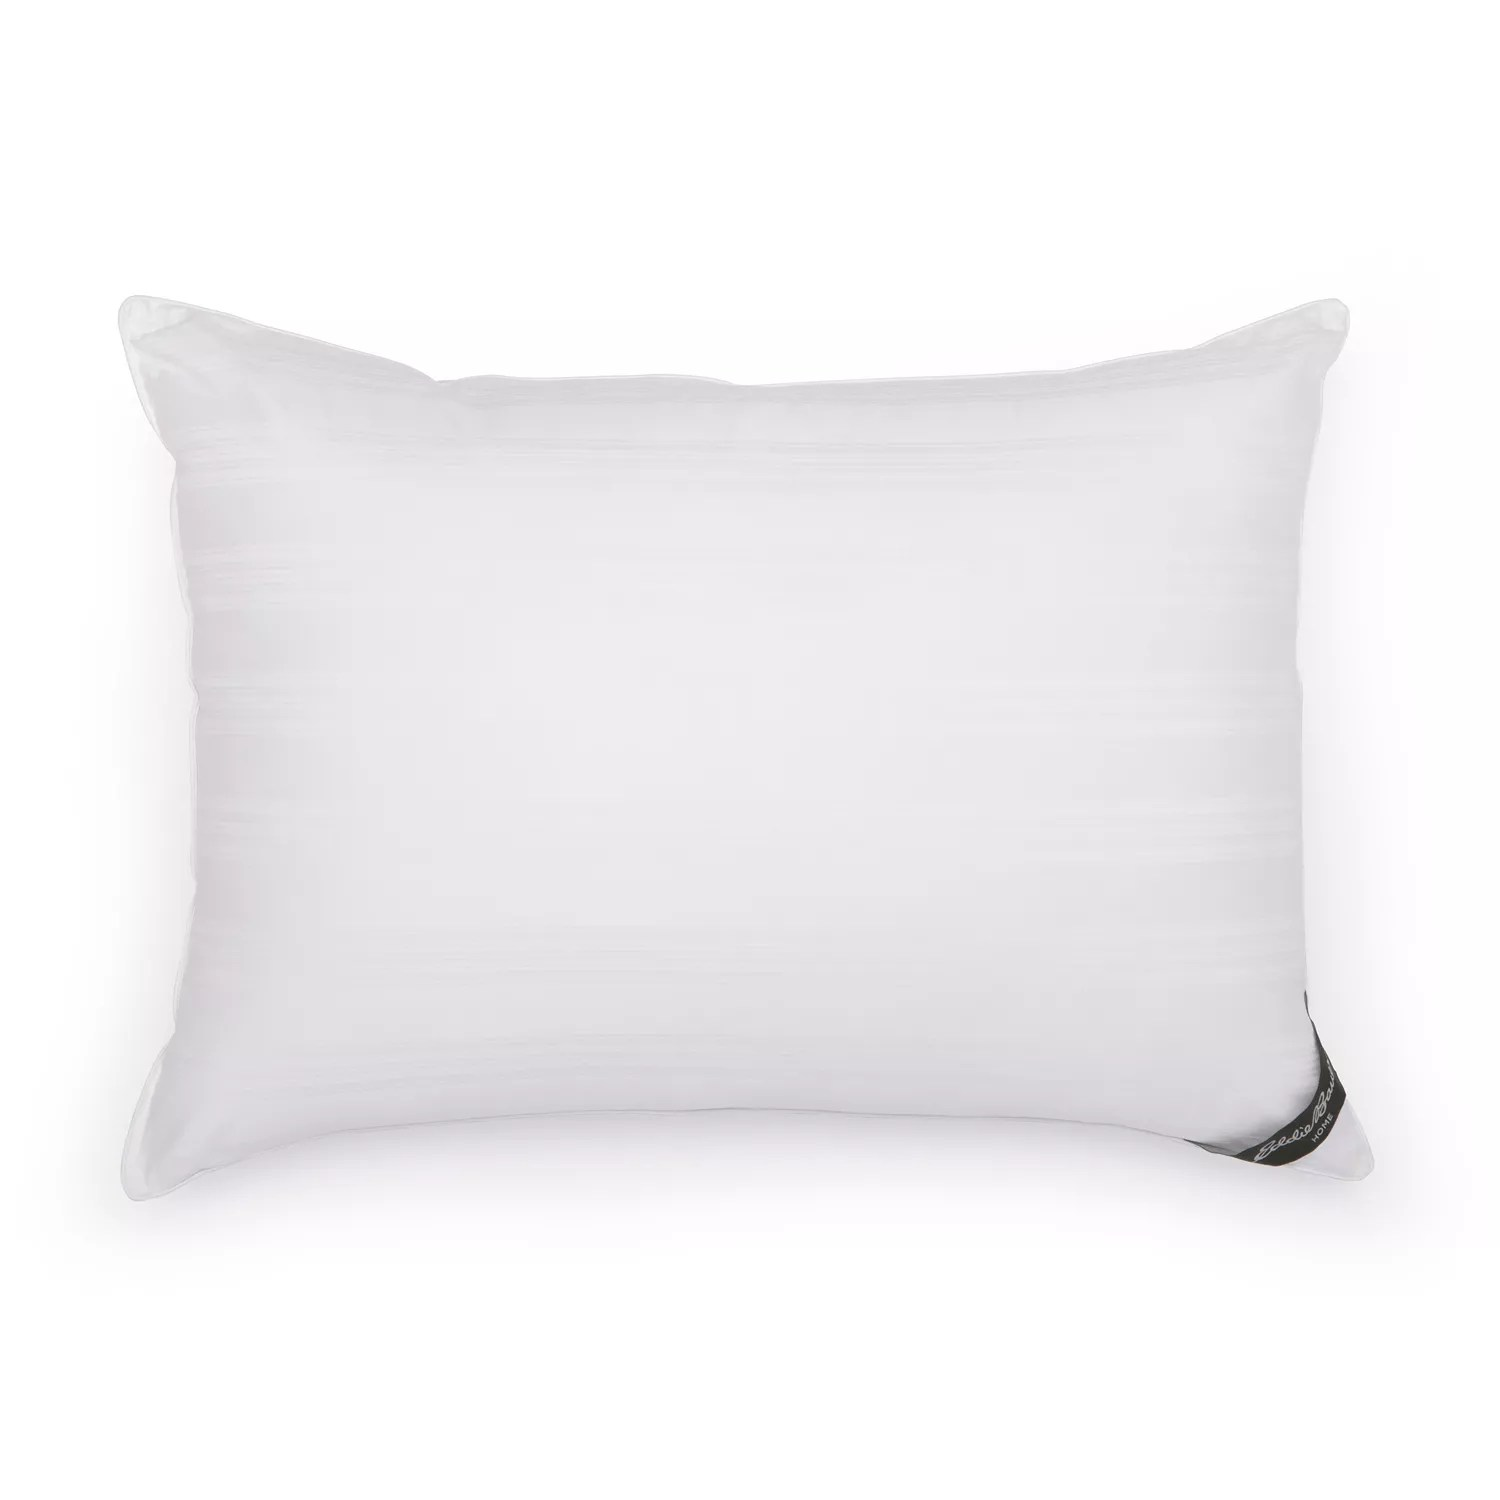 Best Firm Pillow For Side Sleepers Side Sleeper Bed Pillows Kohl S